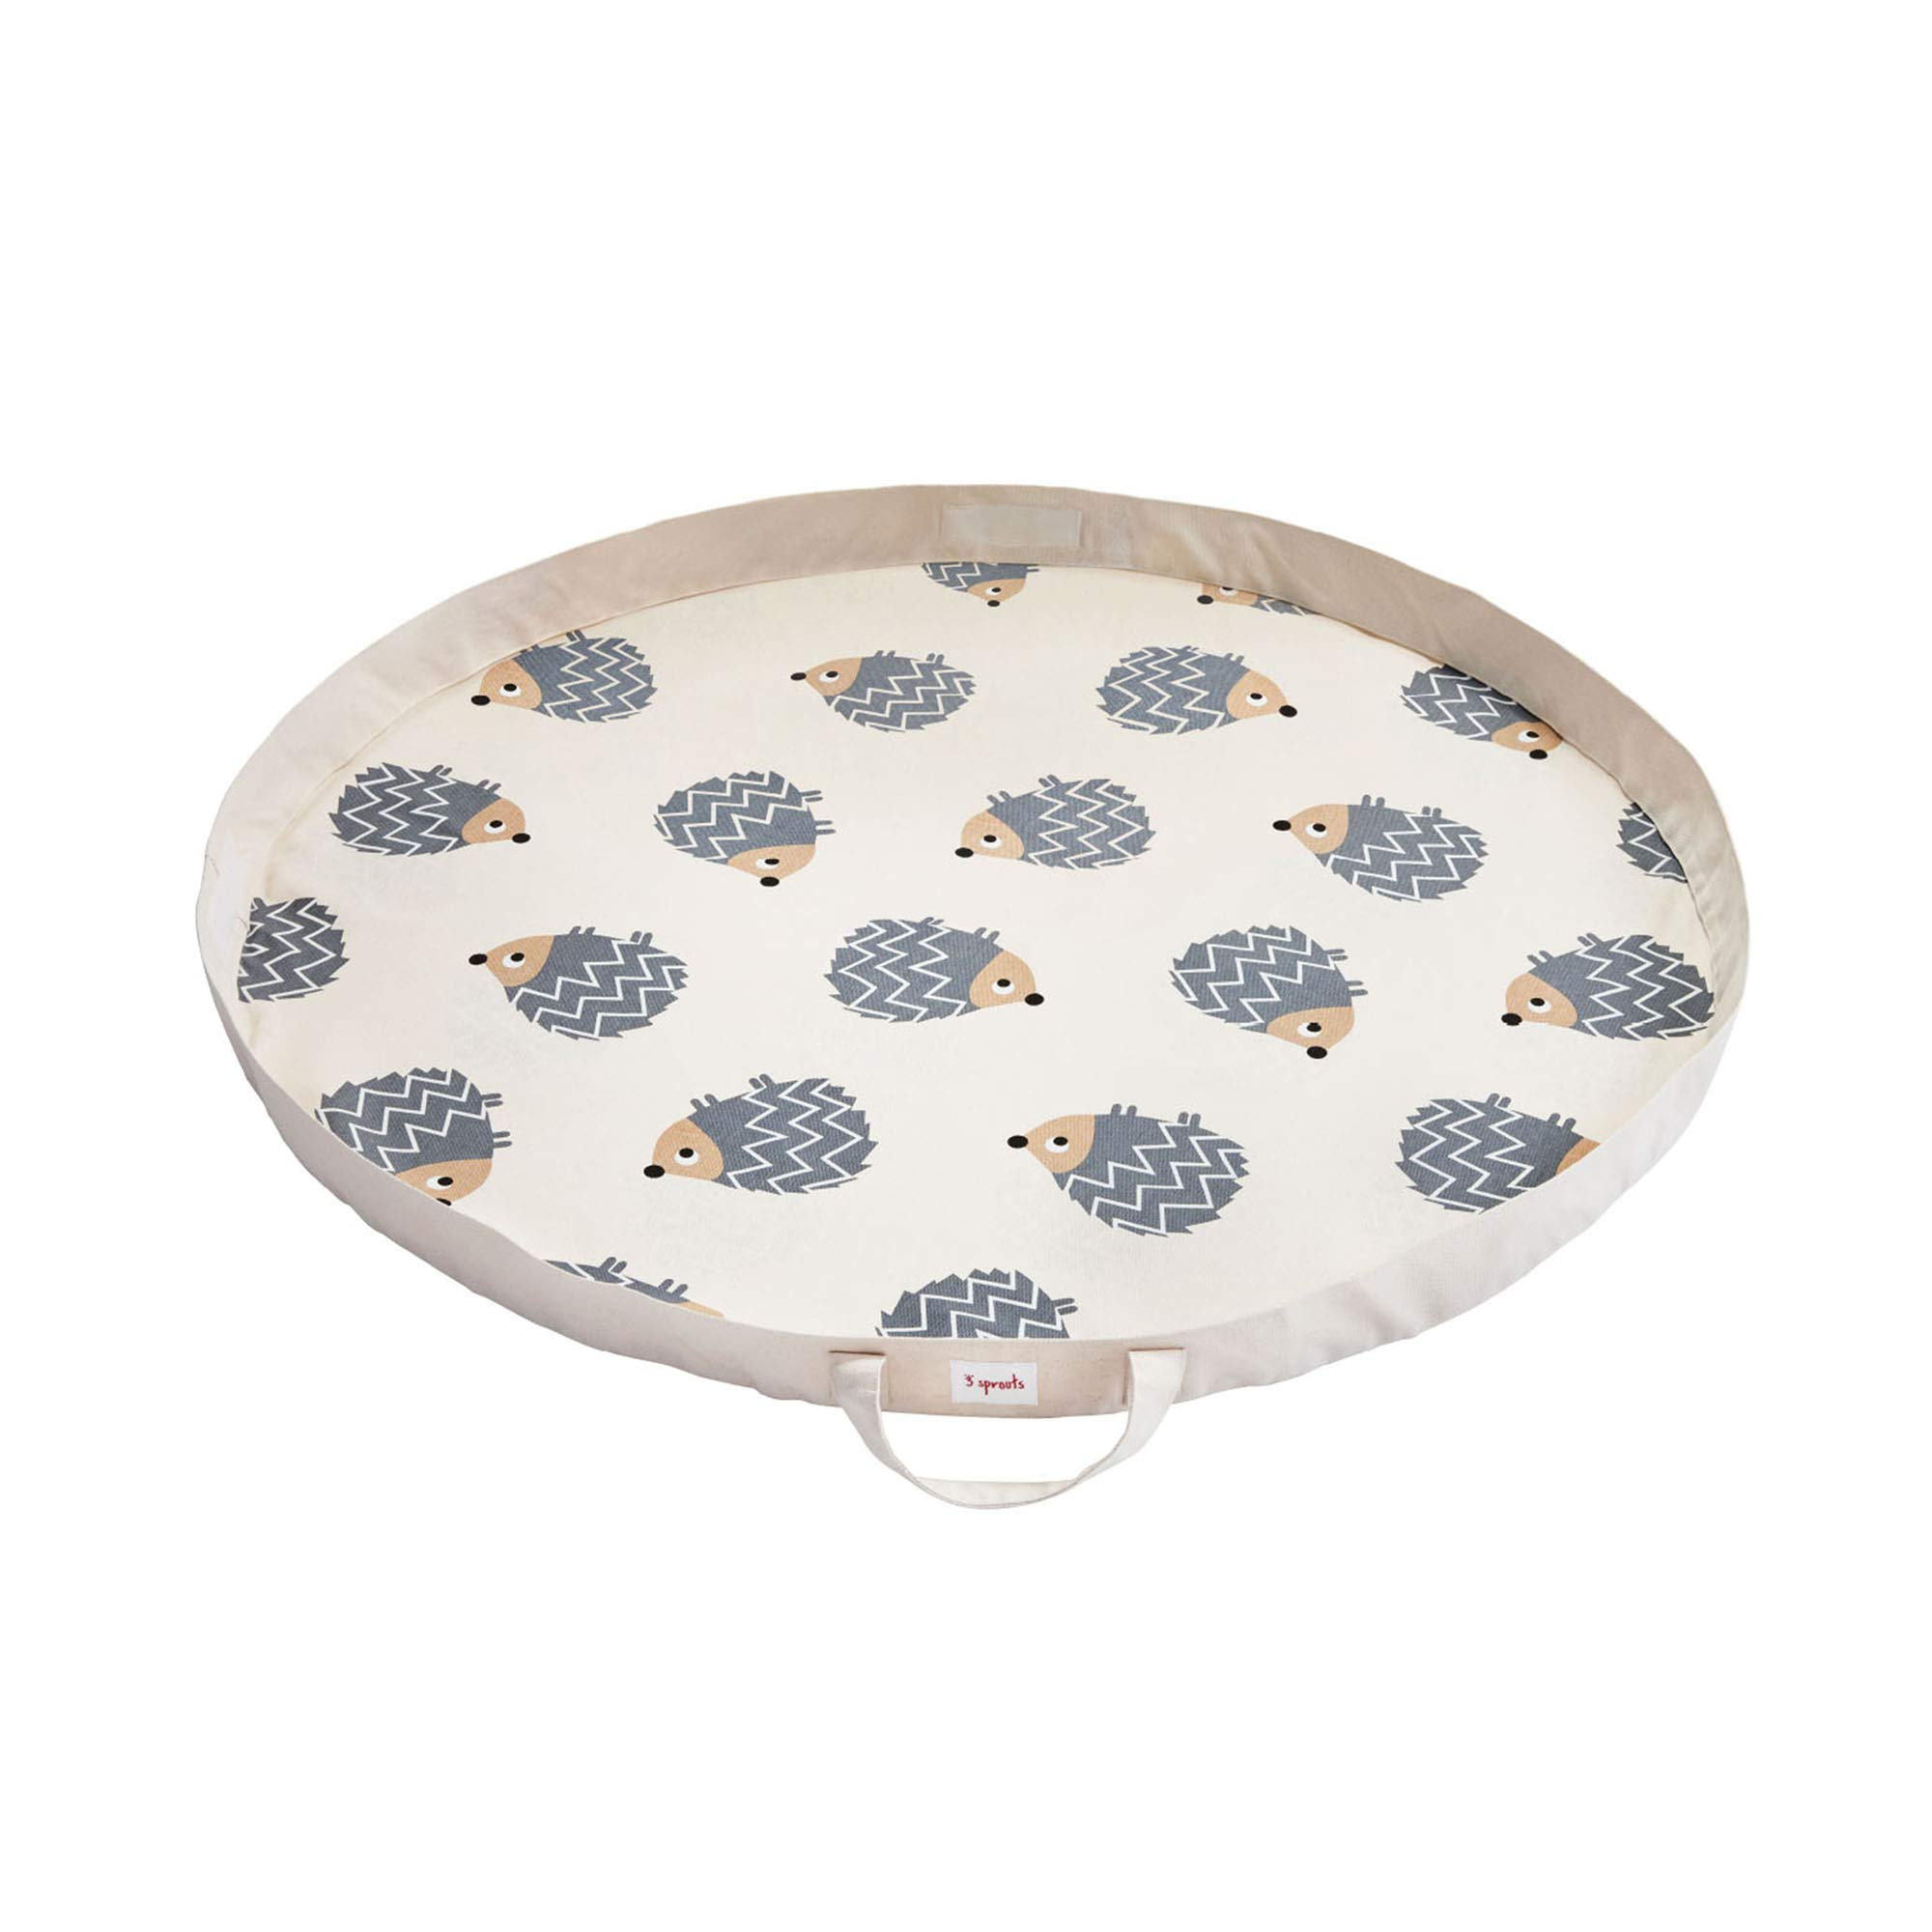 3 Sprouts Play Mat Bag – Large Portable Floor Activity Rug for Baby Storage, Hedgehog